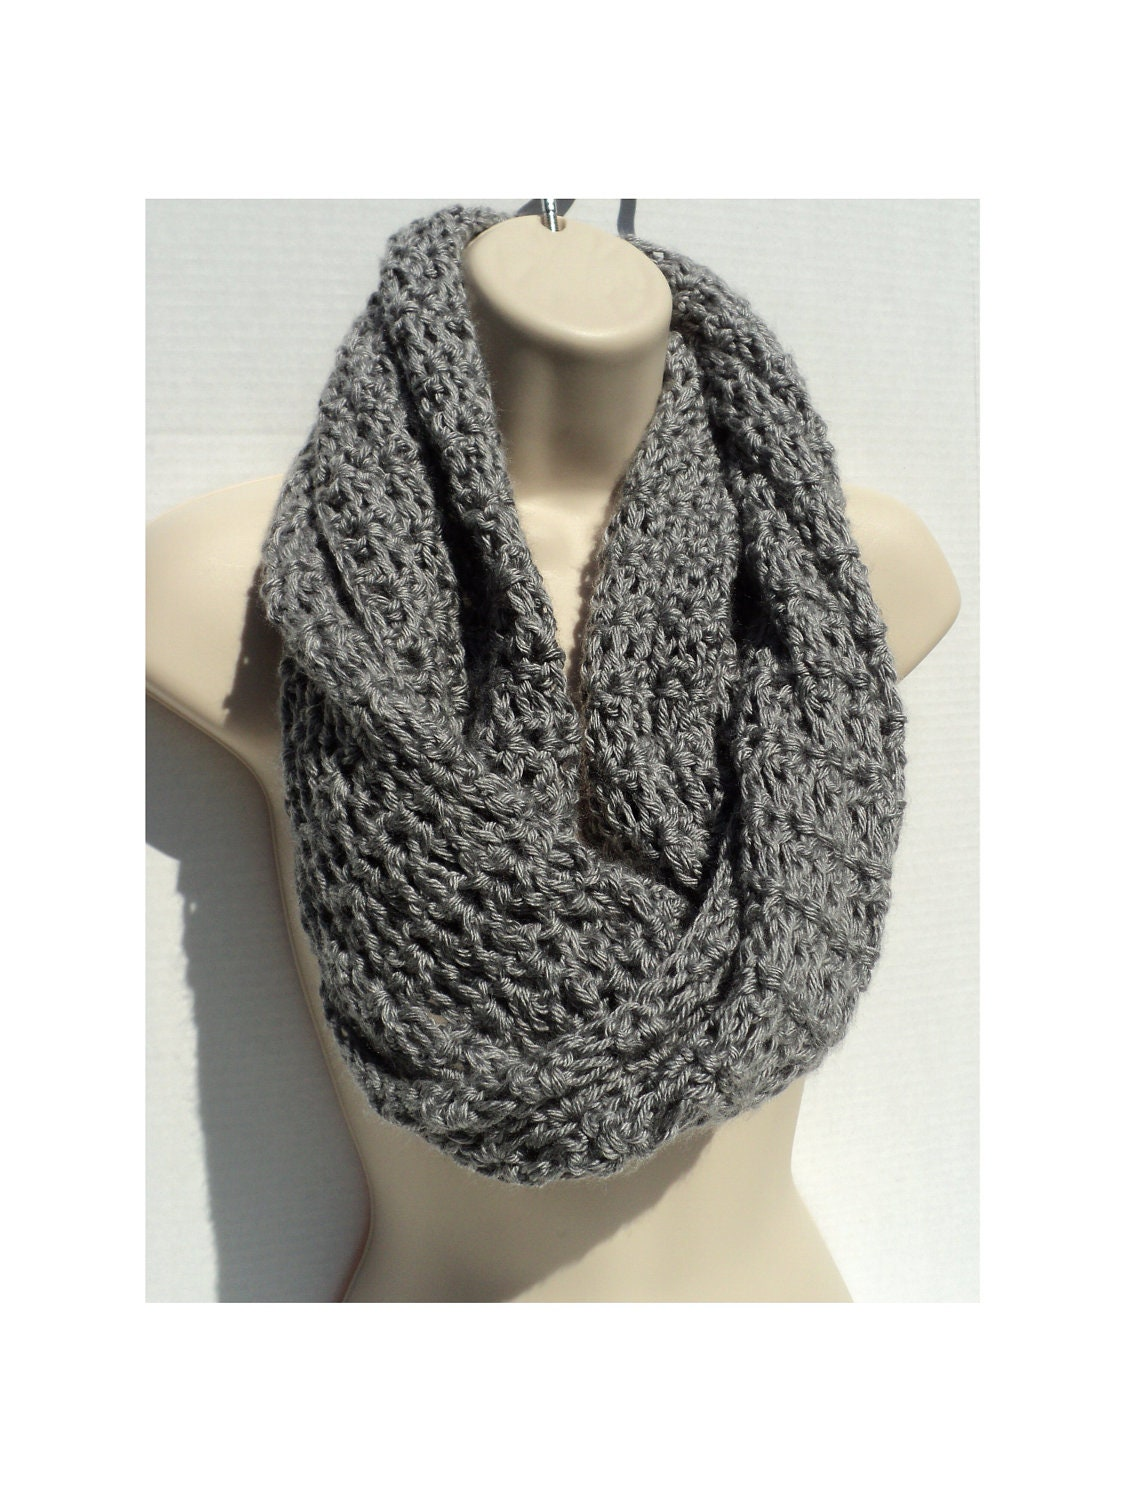 Crochet Patterns Neck Scarves : Crochet Scarf PATTERN PDF Format Pattern Neck Warmer Pattern Neck ...